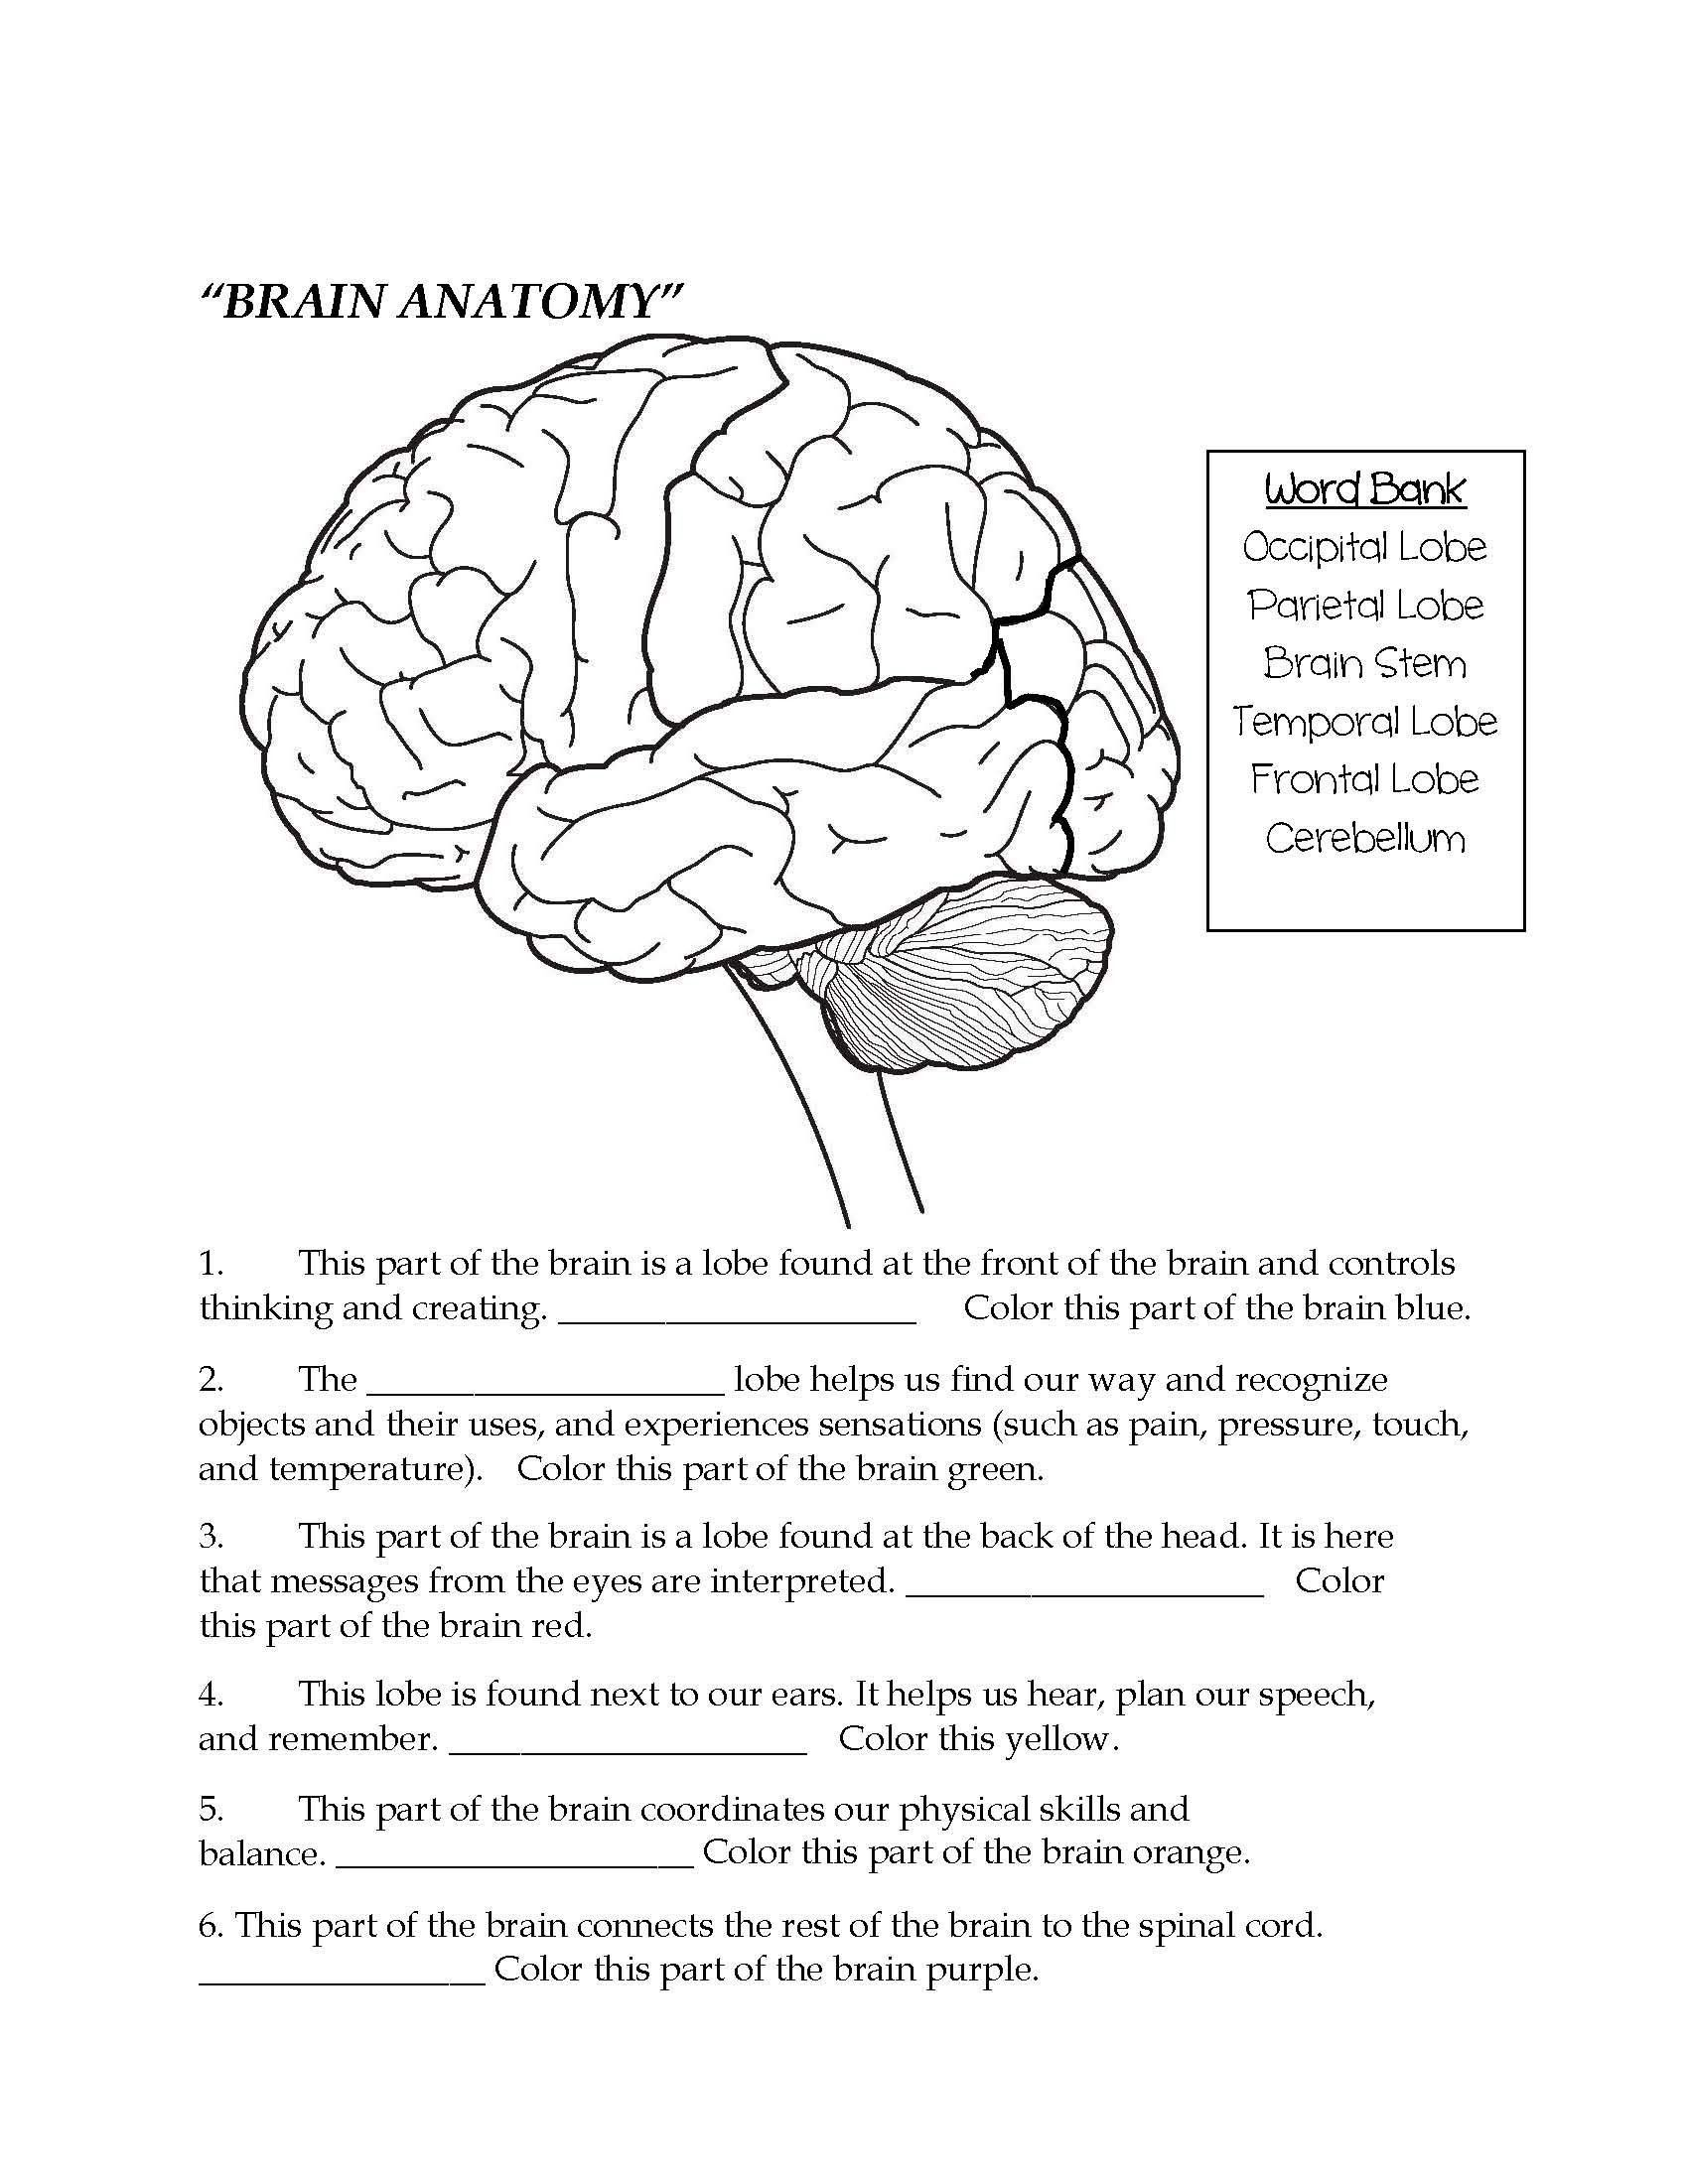 Nervous System Worksheet High School Brain Parts Fill In